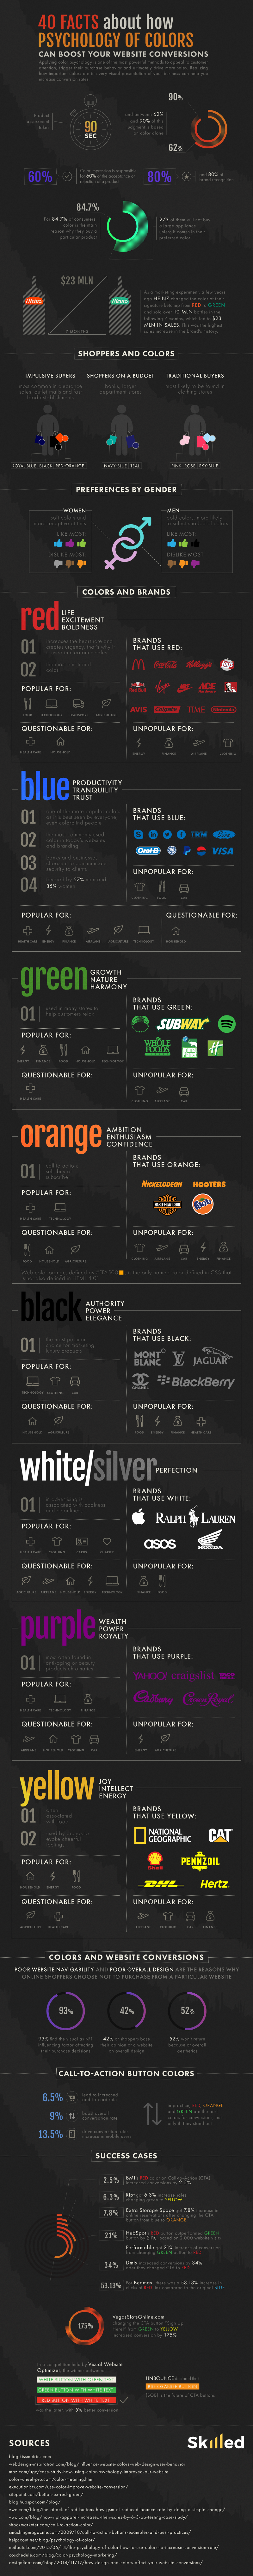 The Psychology of Color and How to Use It for Website Conversions - Infographic